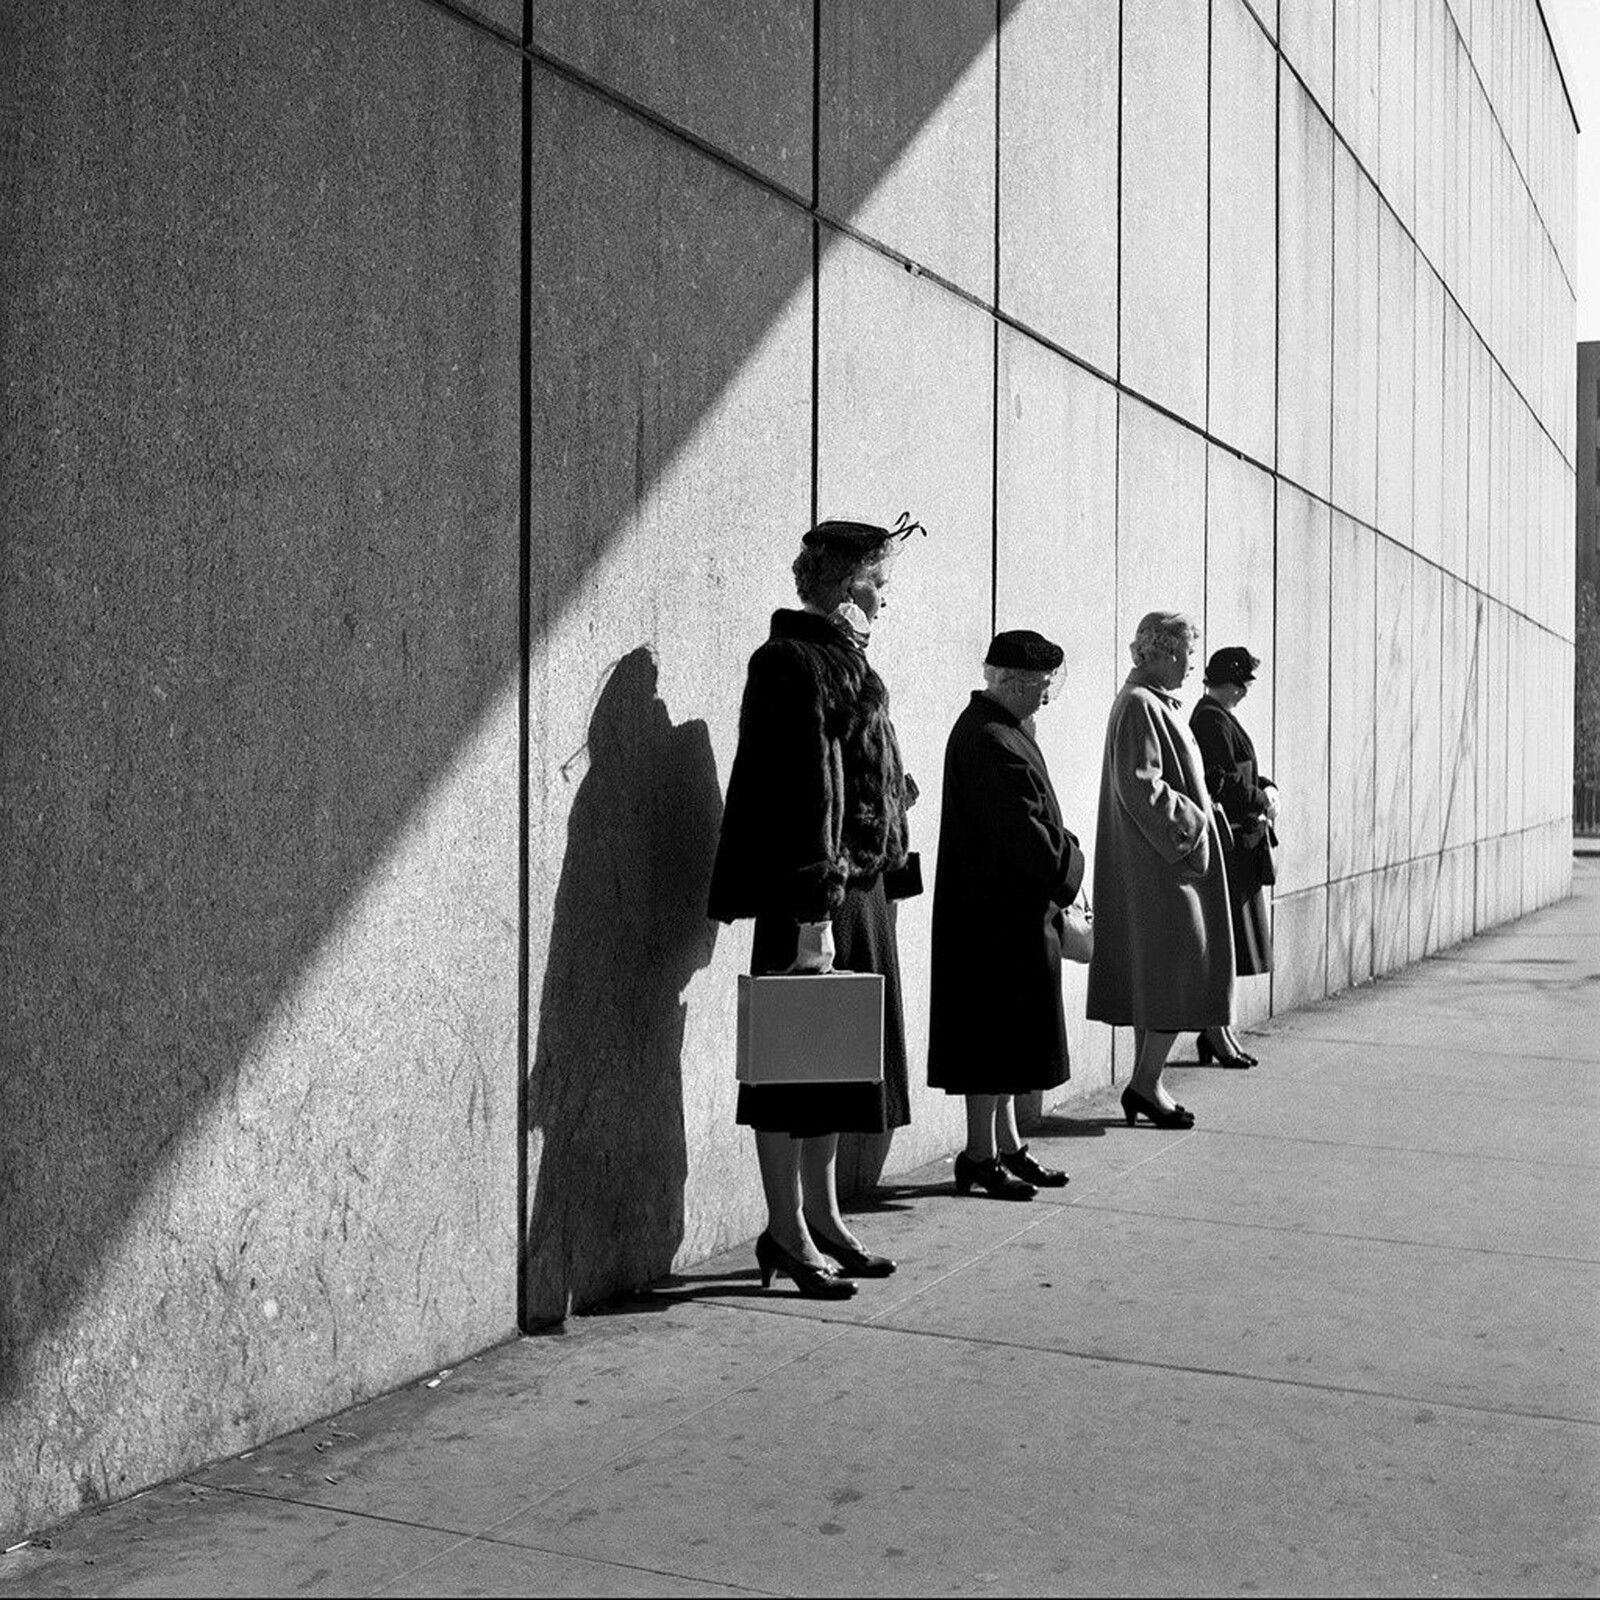 """""""New York, 31 octobre 1954"""" de Vivian MAIER © Estate of Vivian Maier, Courtesy of Maloof Collection and Howard Greenberg Gallery, NY"""